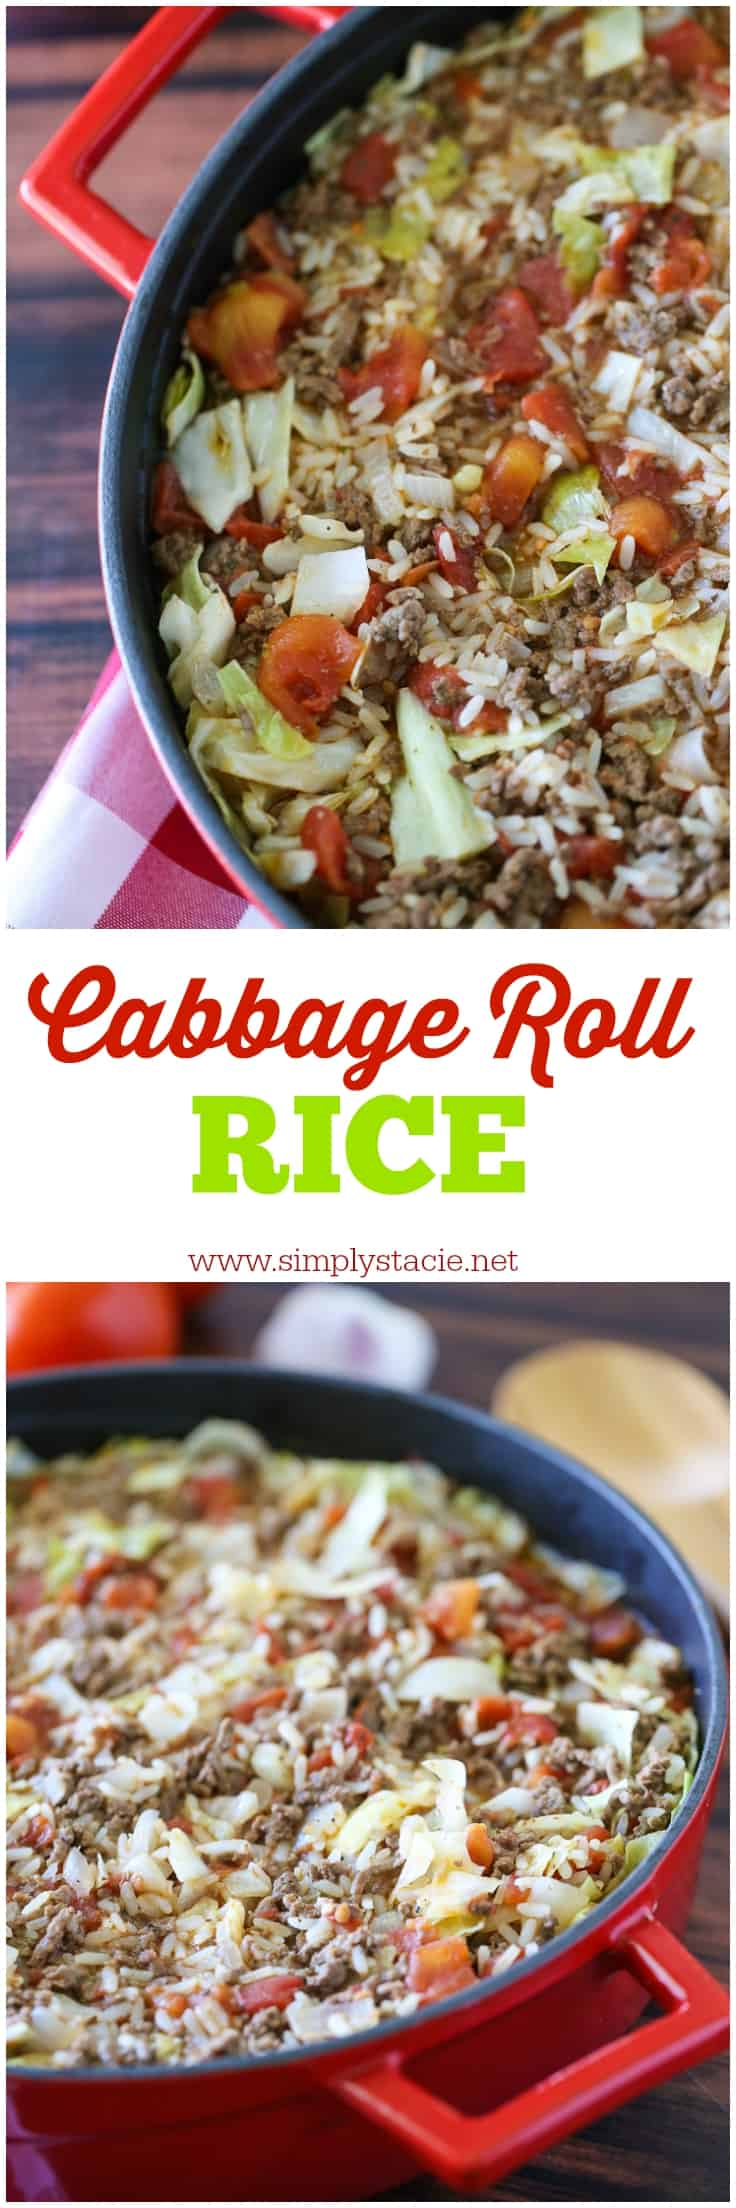 Cabbage Roll Rice - Want the taste of cabbage rolls without the extra work? This Cabbage Roll Rice recipe is exactly what you need. It's easy to make and tastes delicious!